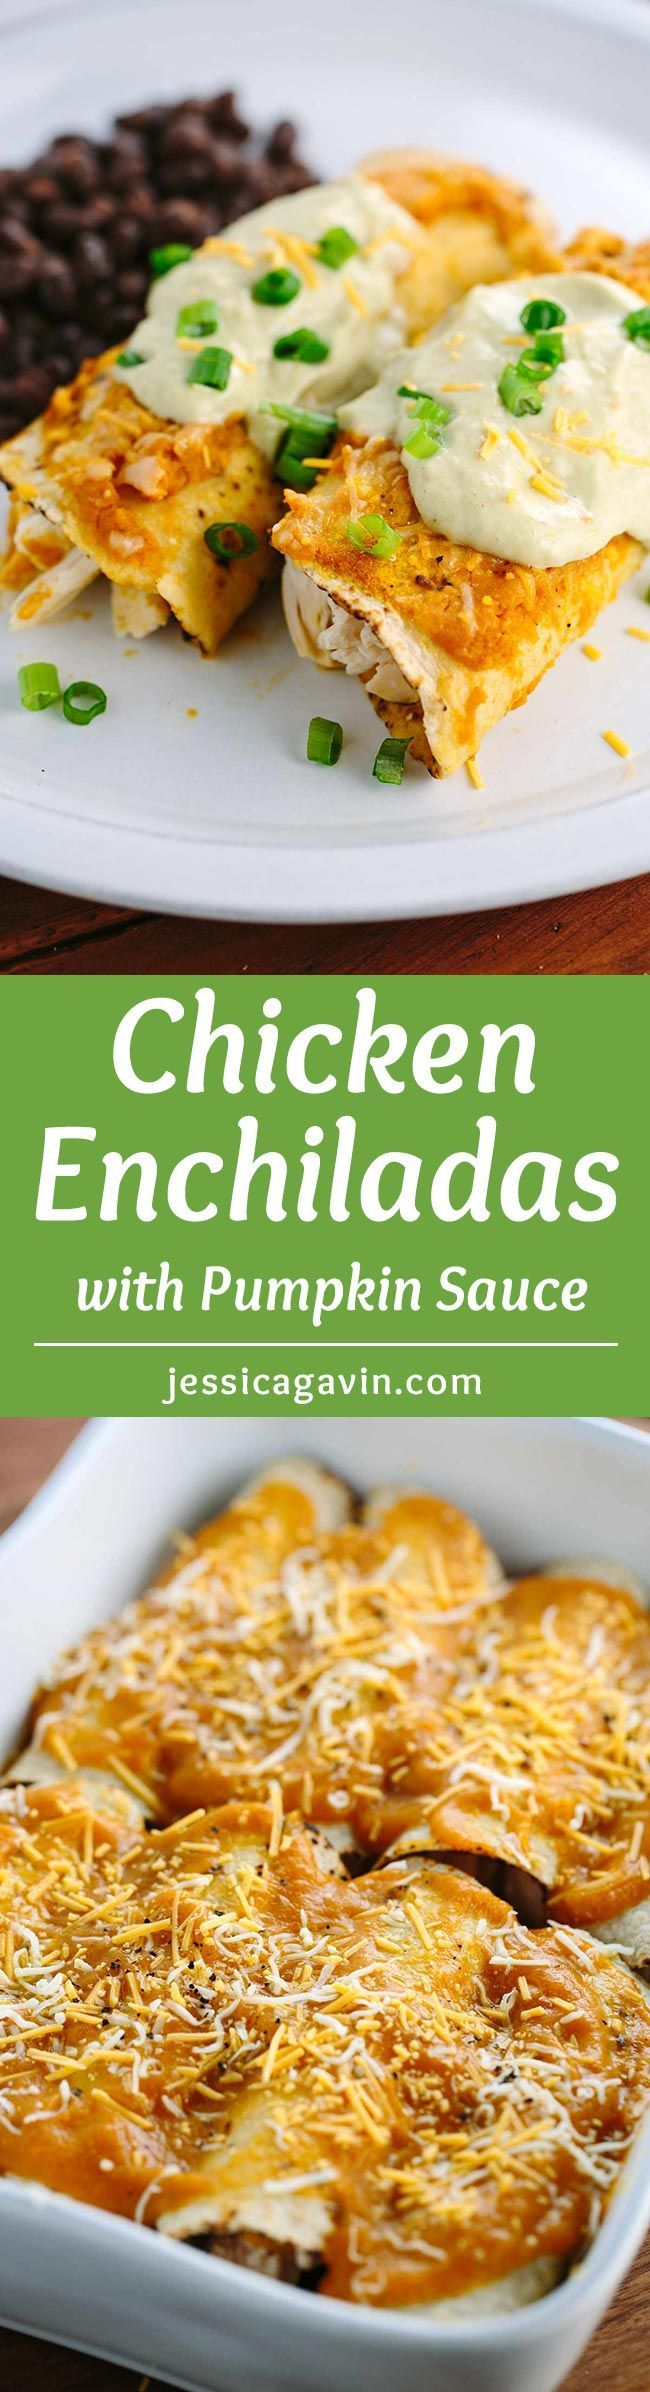 Chicken Enchiladas with Pumpkin Sauce - You'd never know there's pumpkin inside! This delicious recipe is topped with a luscious green chili cream sauce and cotija cheese for added flavor.   jessicagavin.com